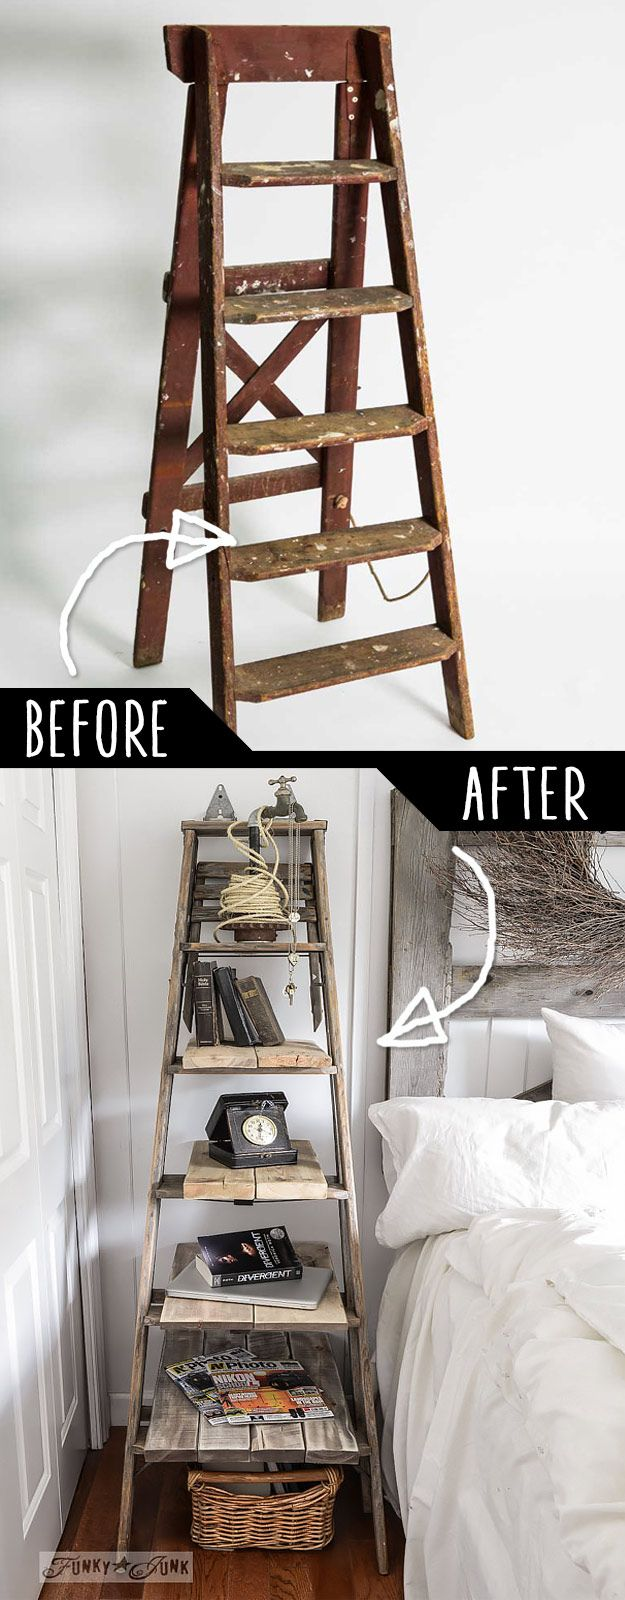 clever diy furniture hacks diy furniture creative and clever diy